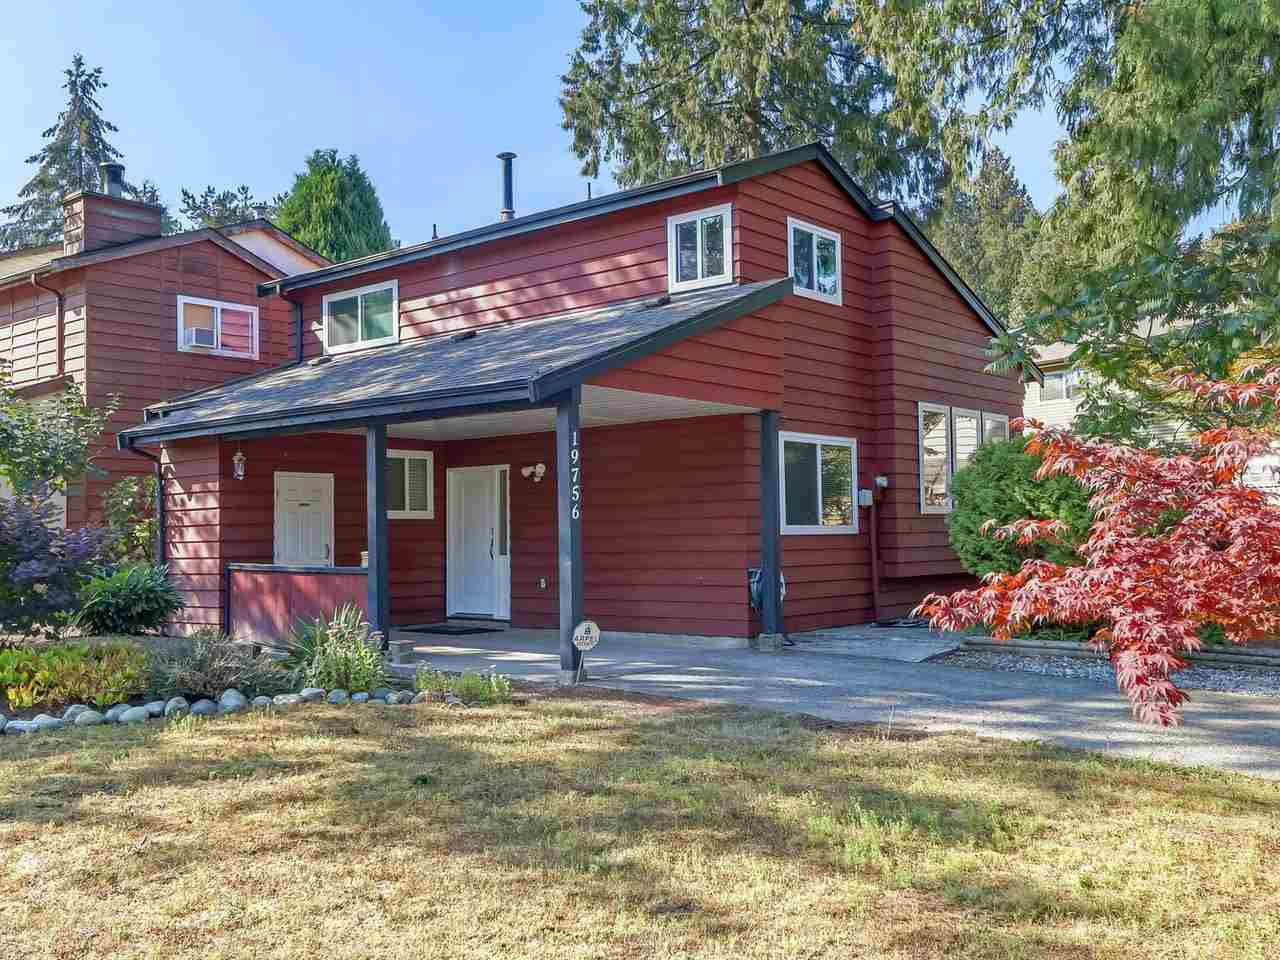 """Main Photo: 19756 WILDCREST Avenue in Pitt Meadows: South Meadows House for sale in """"WILDWOOD PARK"""" : MLS®# R2302569"""